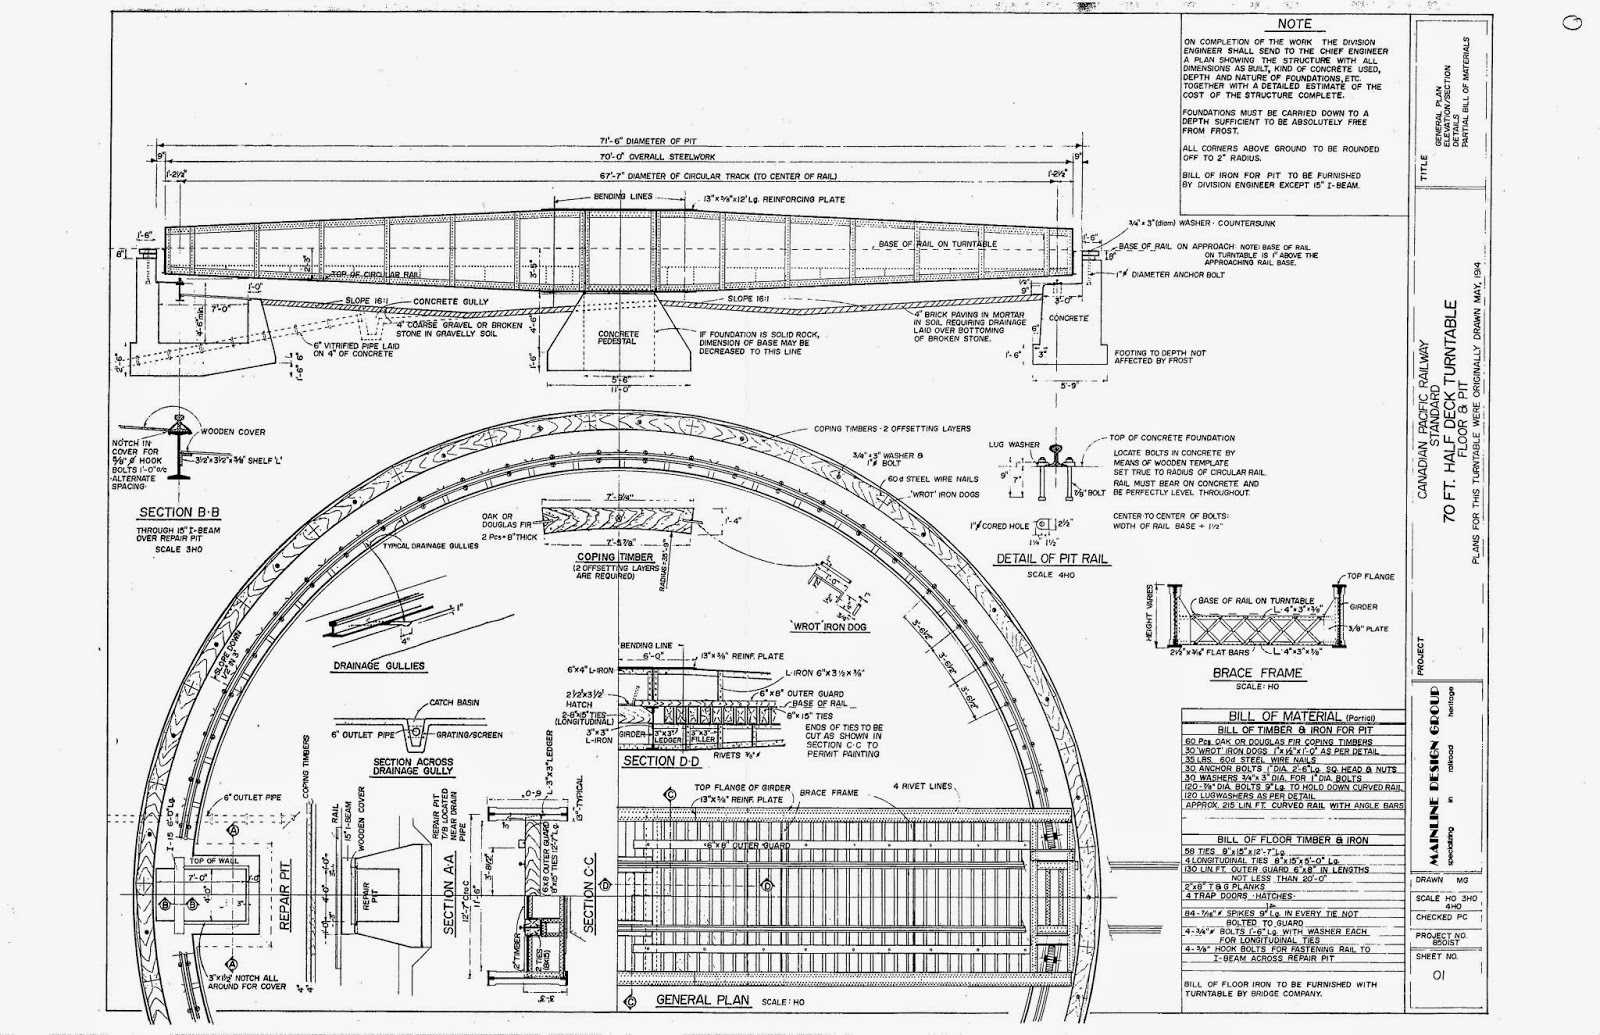 Kettle Valley Model Railway Cpr 70 Half Deck Turntable Wiring Diagram The Drawing Was Made By A Gentleman Initials Mg Who Published Various Other Drawings In 1985 I Bought Set When First Released And Have Not Heard